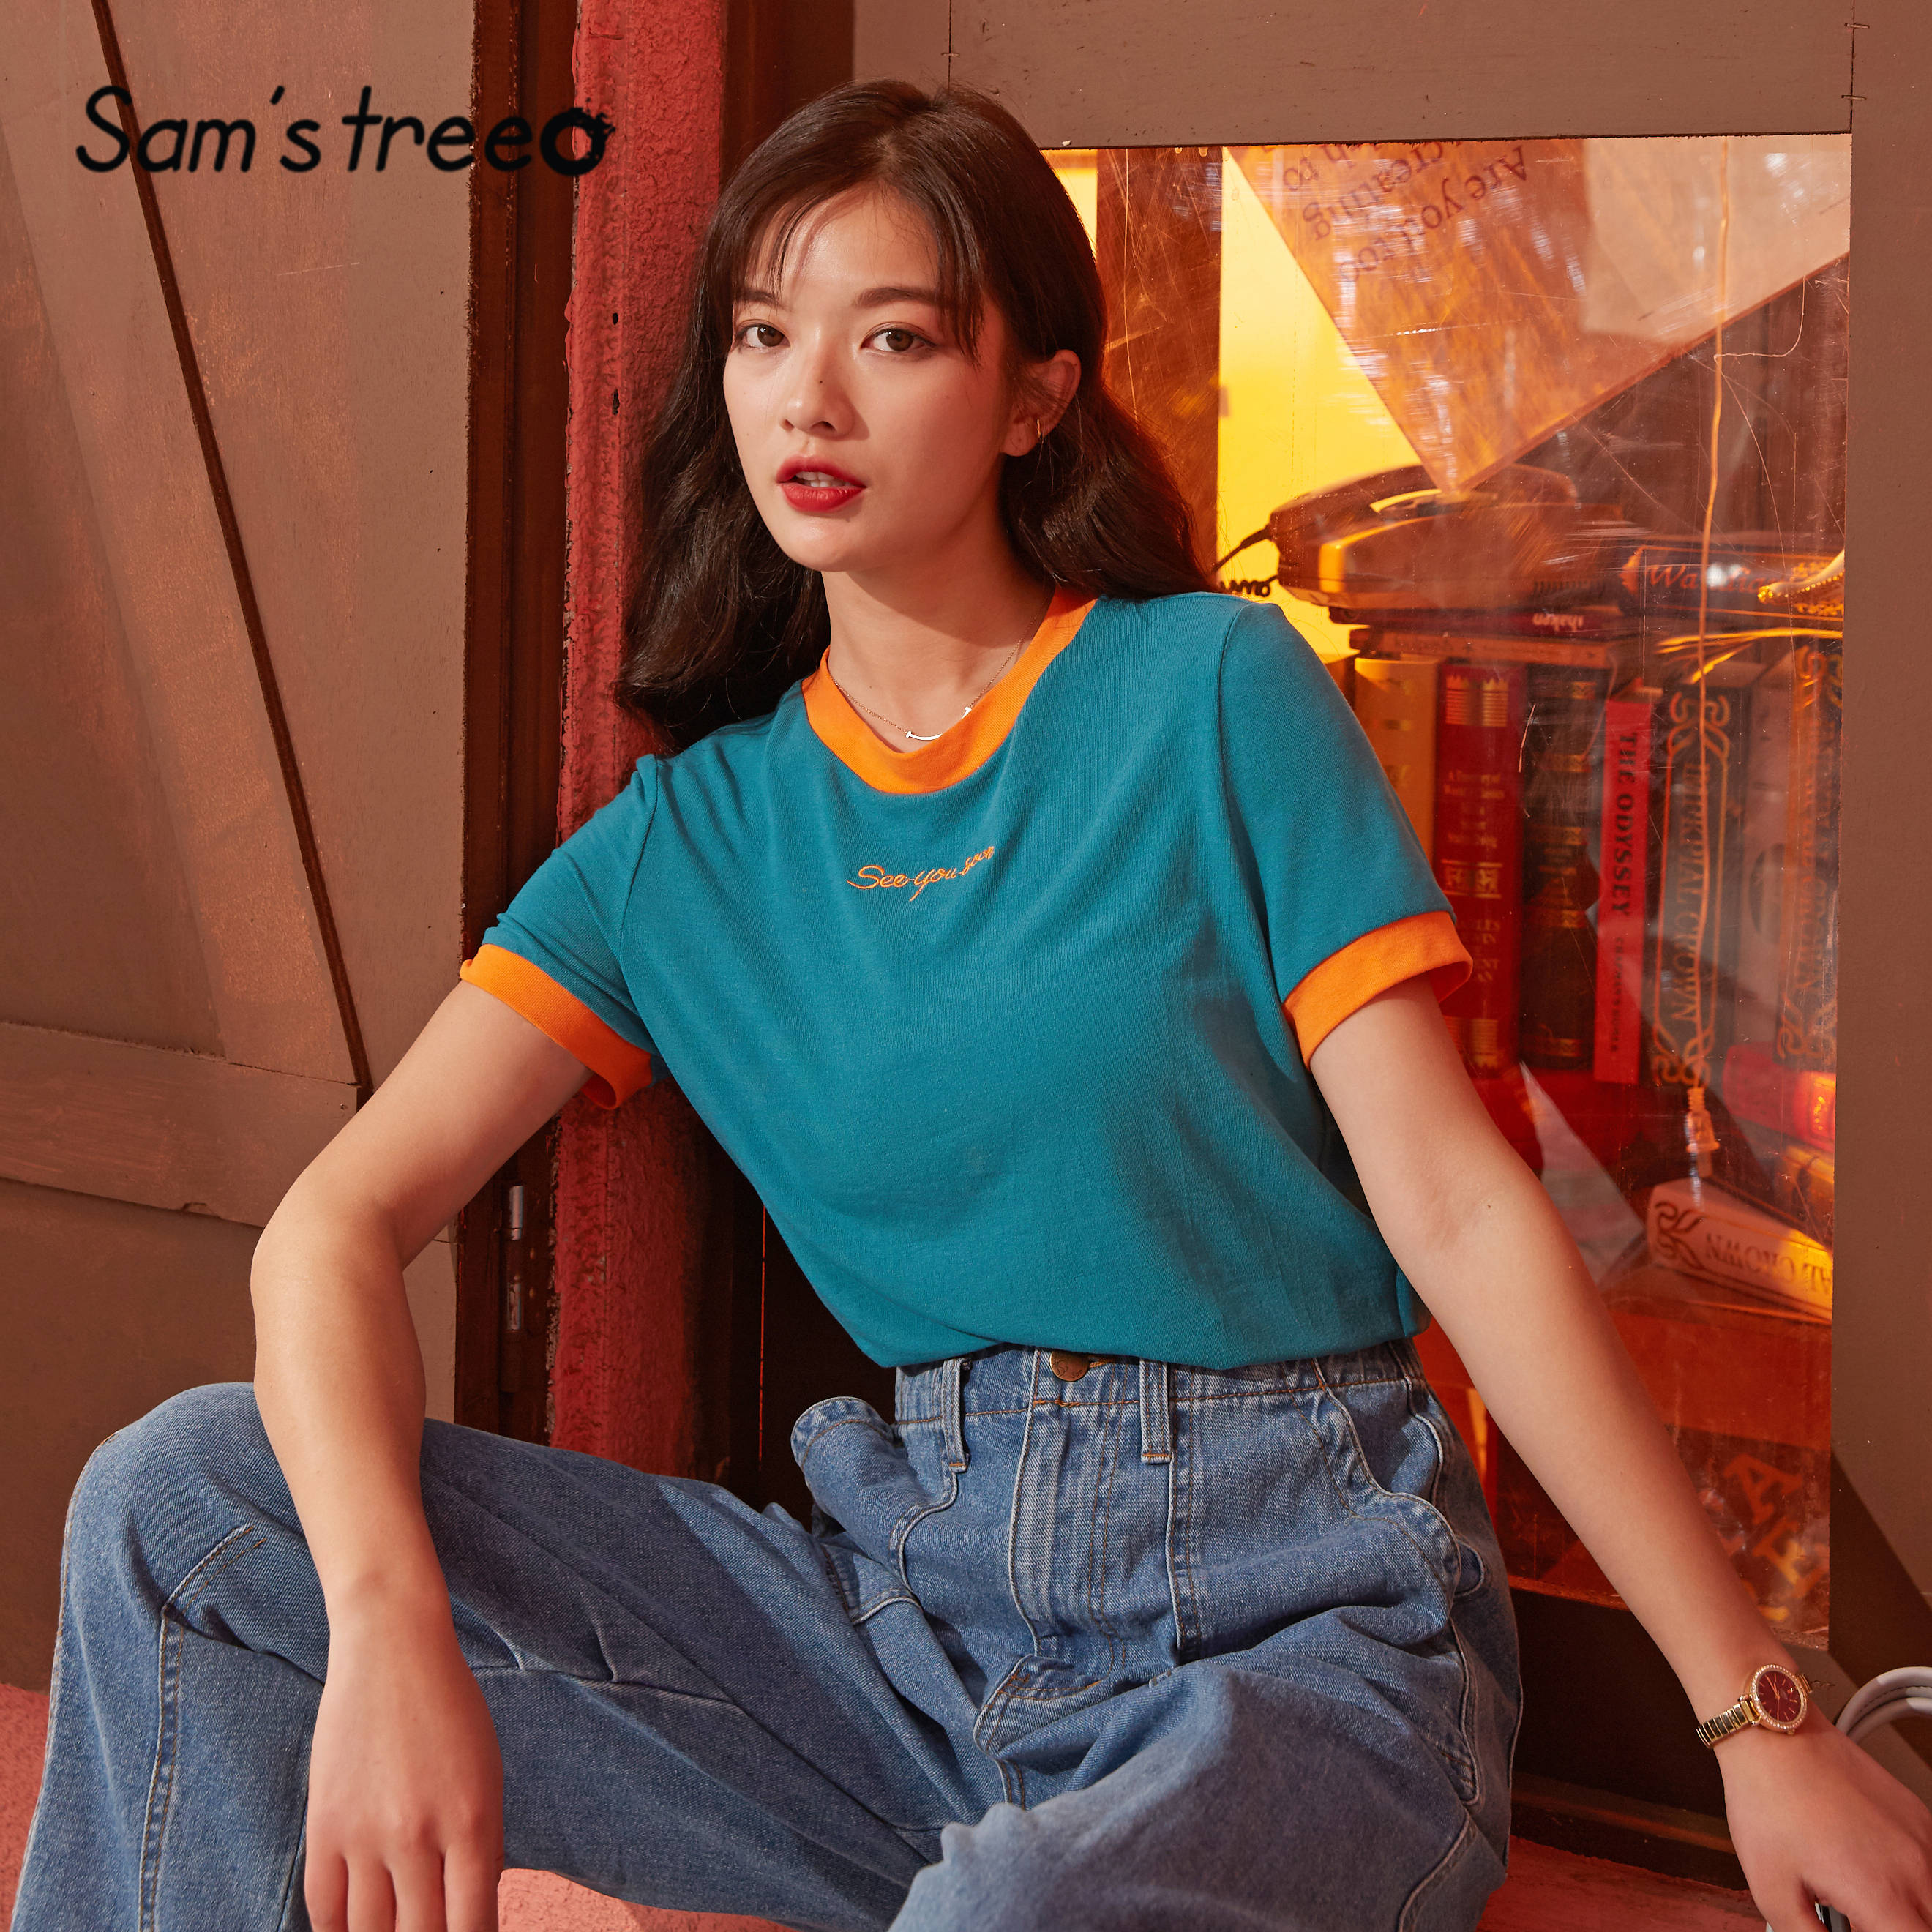 SAM'S TREE Black Solid Letter Embroidery Women Casual T Shirts 2020 Spring New Colorblock Short Sleeve Korean Ladies Daily Tops